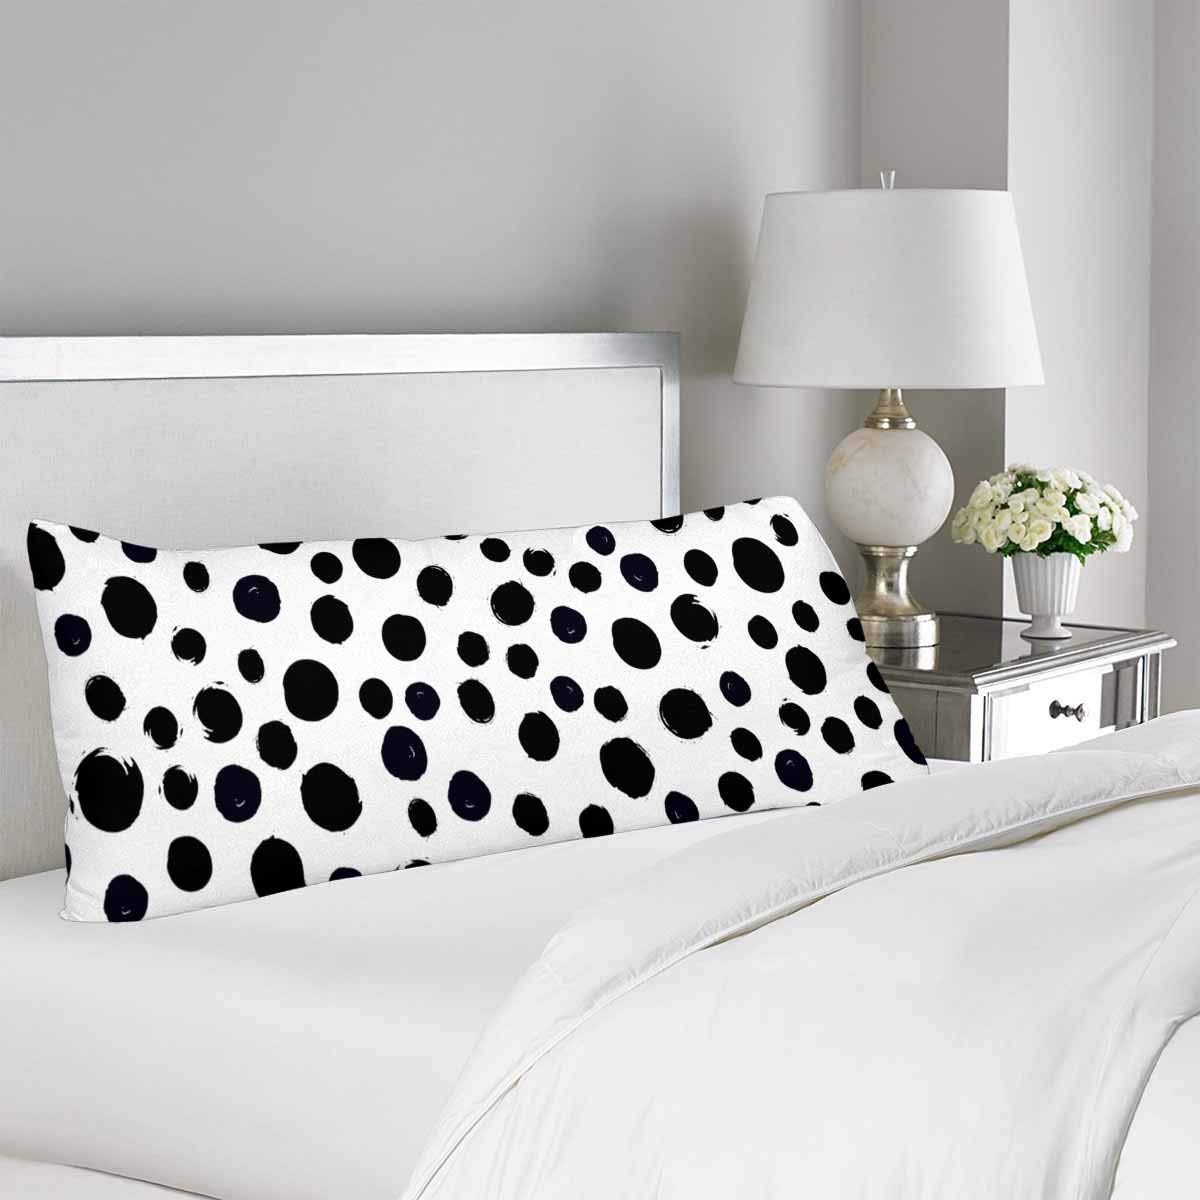 GCKG Black and White Polka Dot Body Pillow Covers Pillowcase 20x60 inches, Dotted Body Pillow Case Protector - image 1 of 2